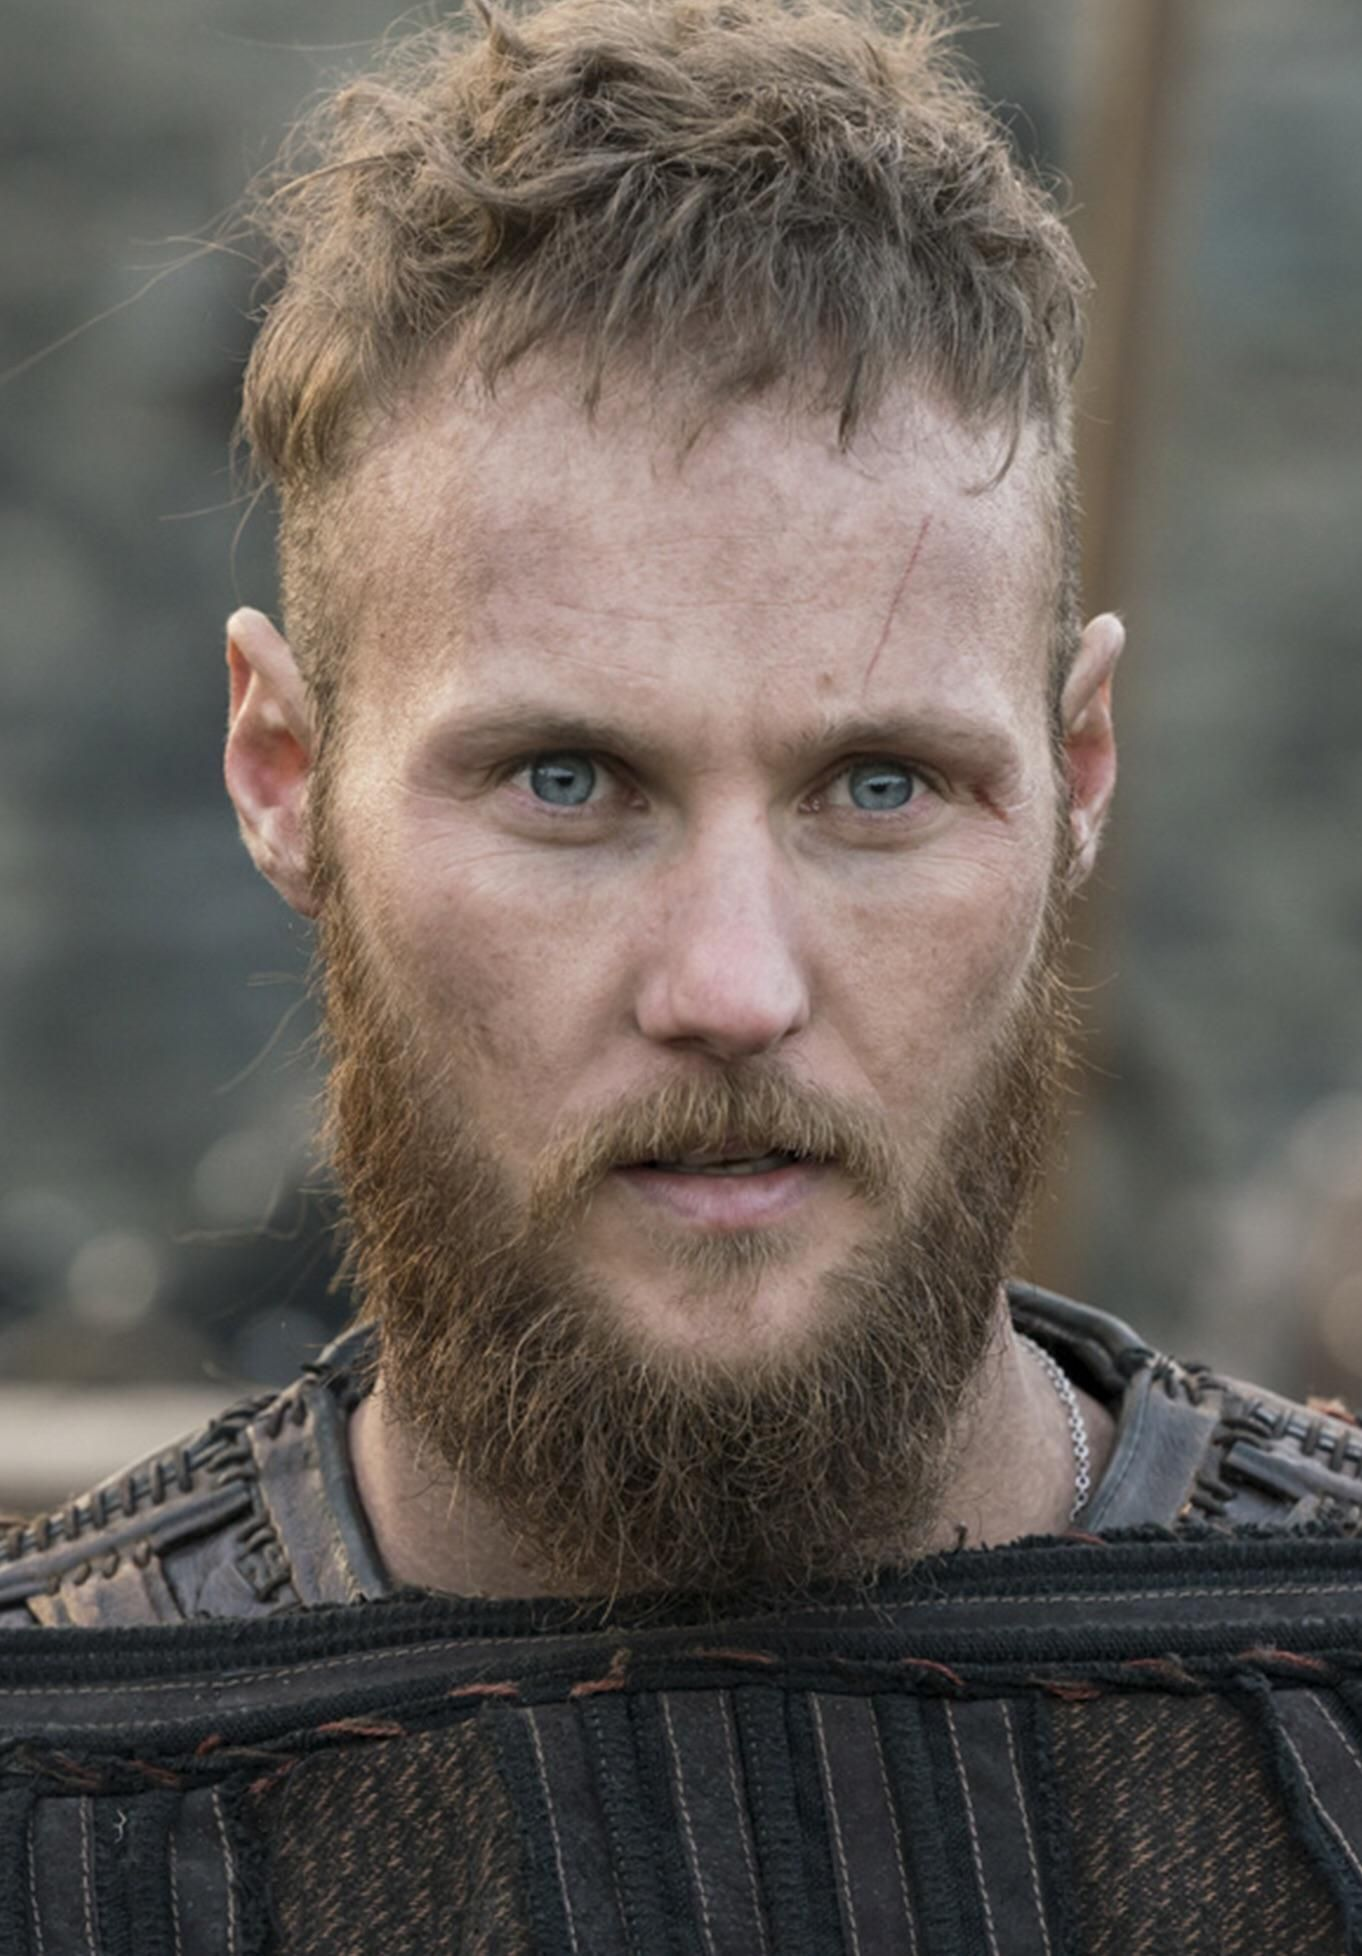 Ubbe From Vikings Wanting To Get Like This Is This Tapered Or All